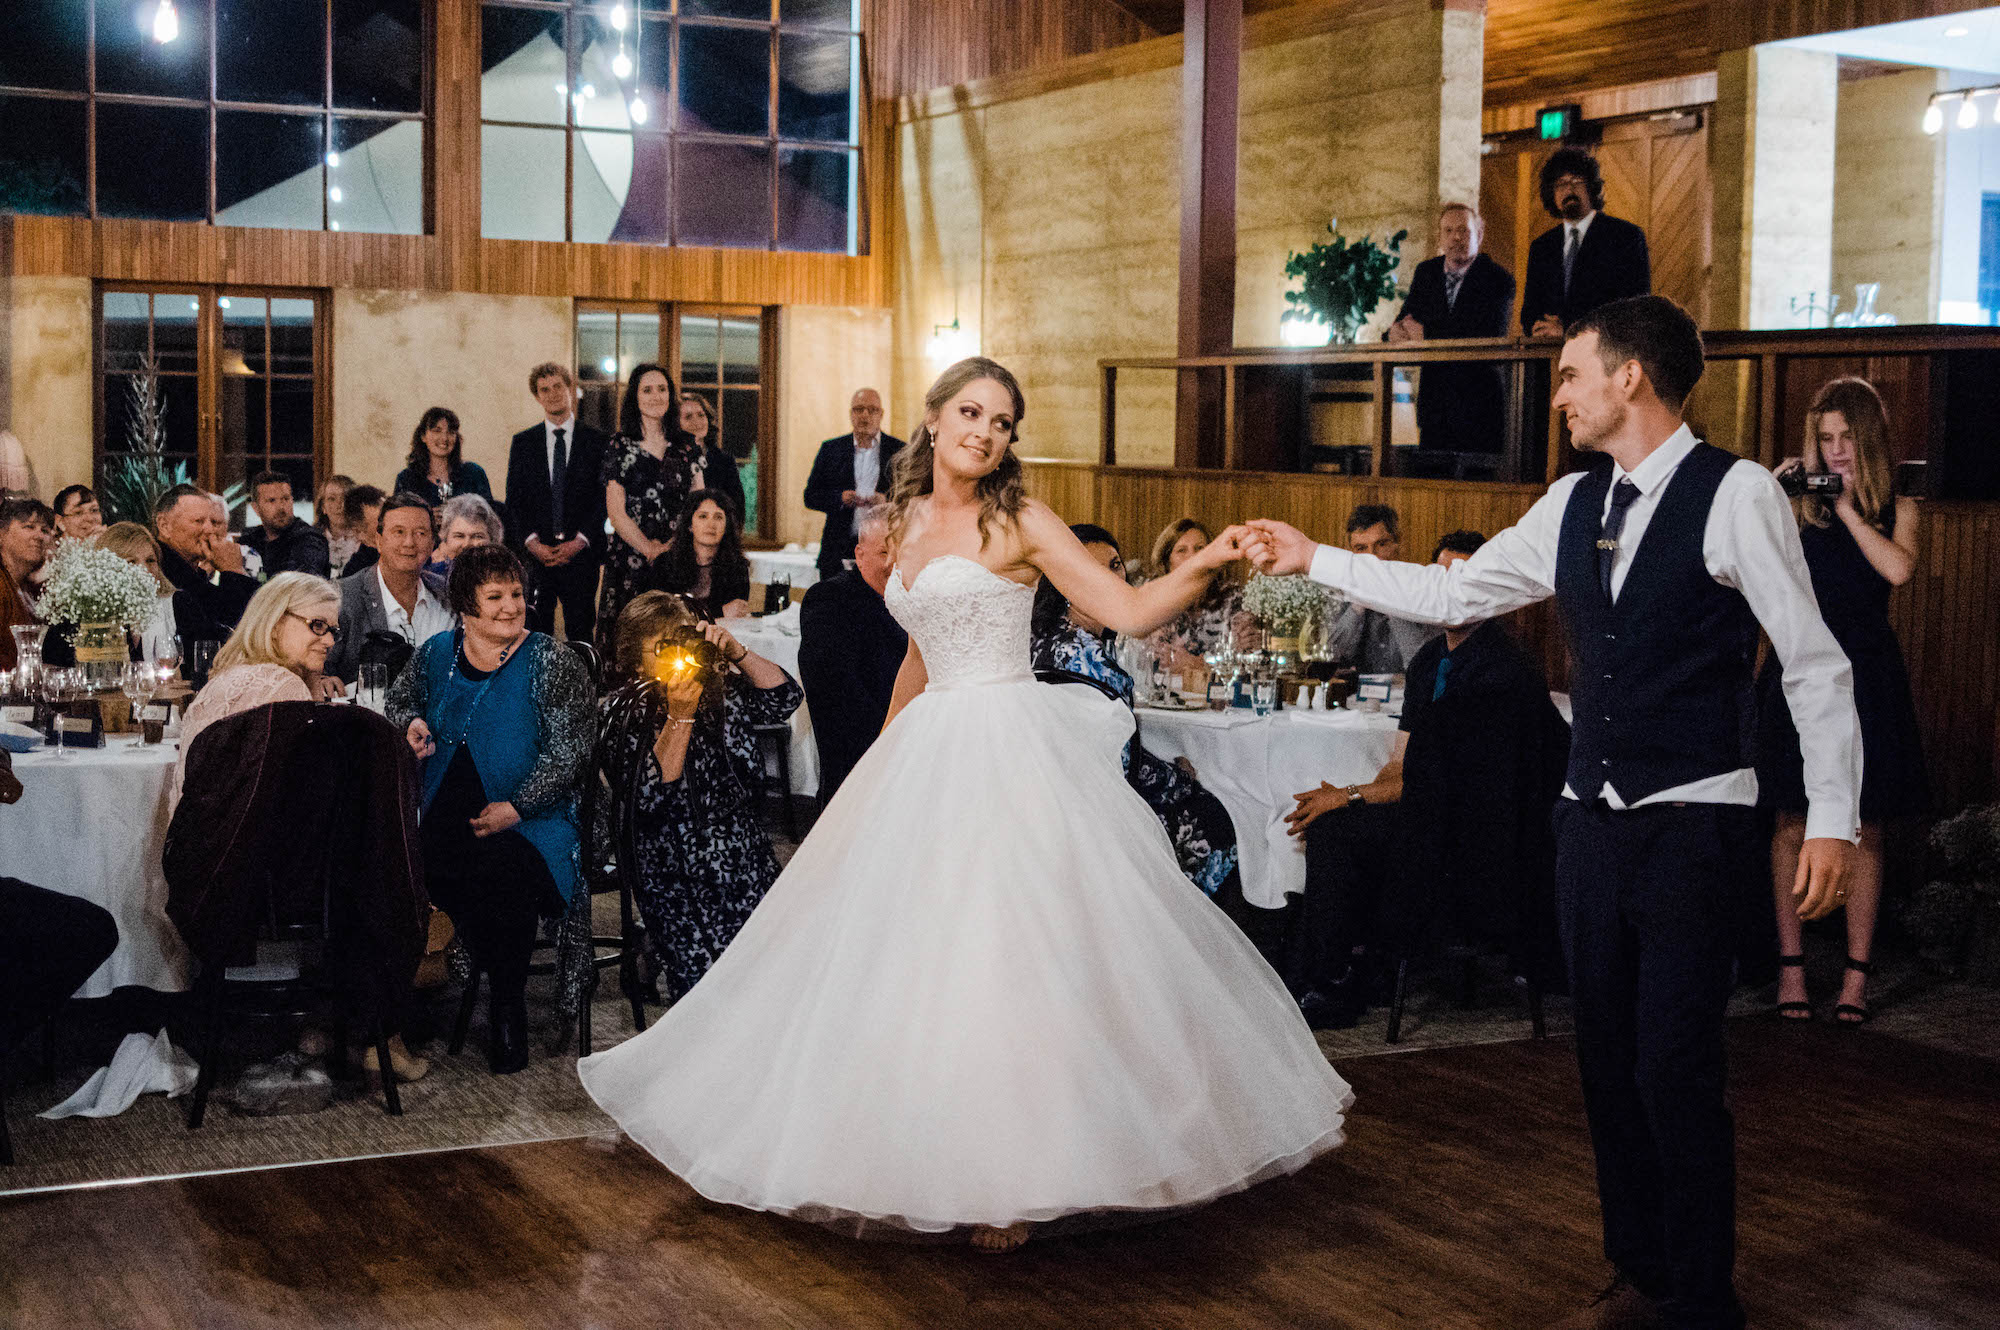 The bride & groom spin at their first dance at Quarry Farm, WA.